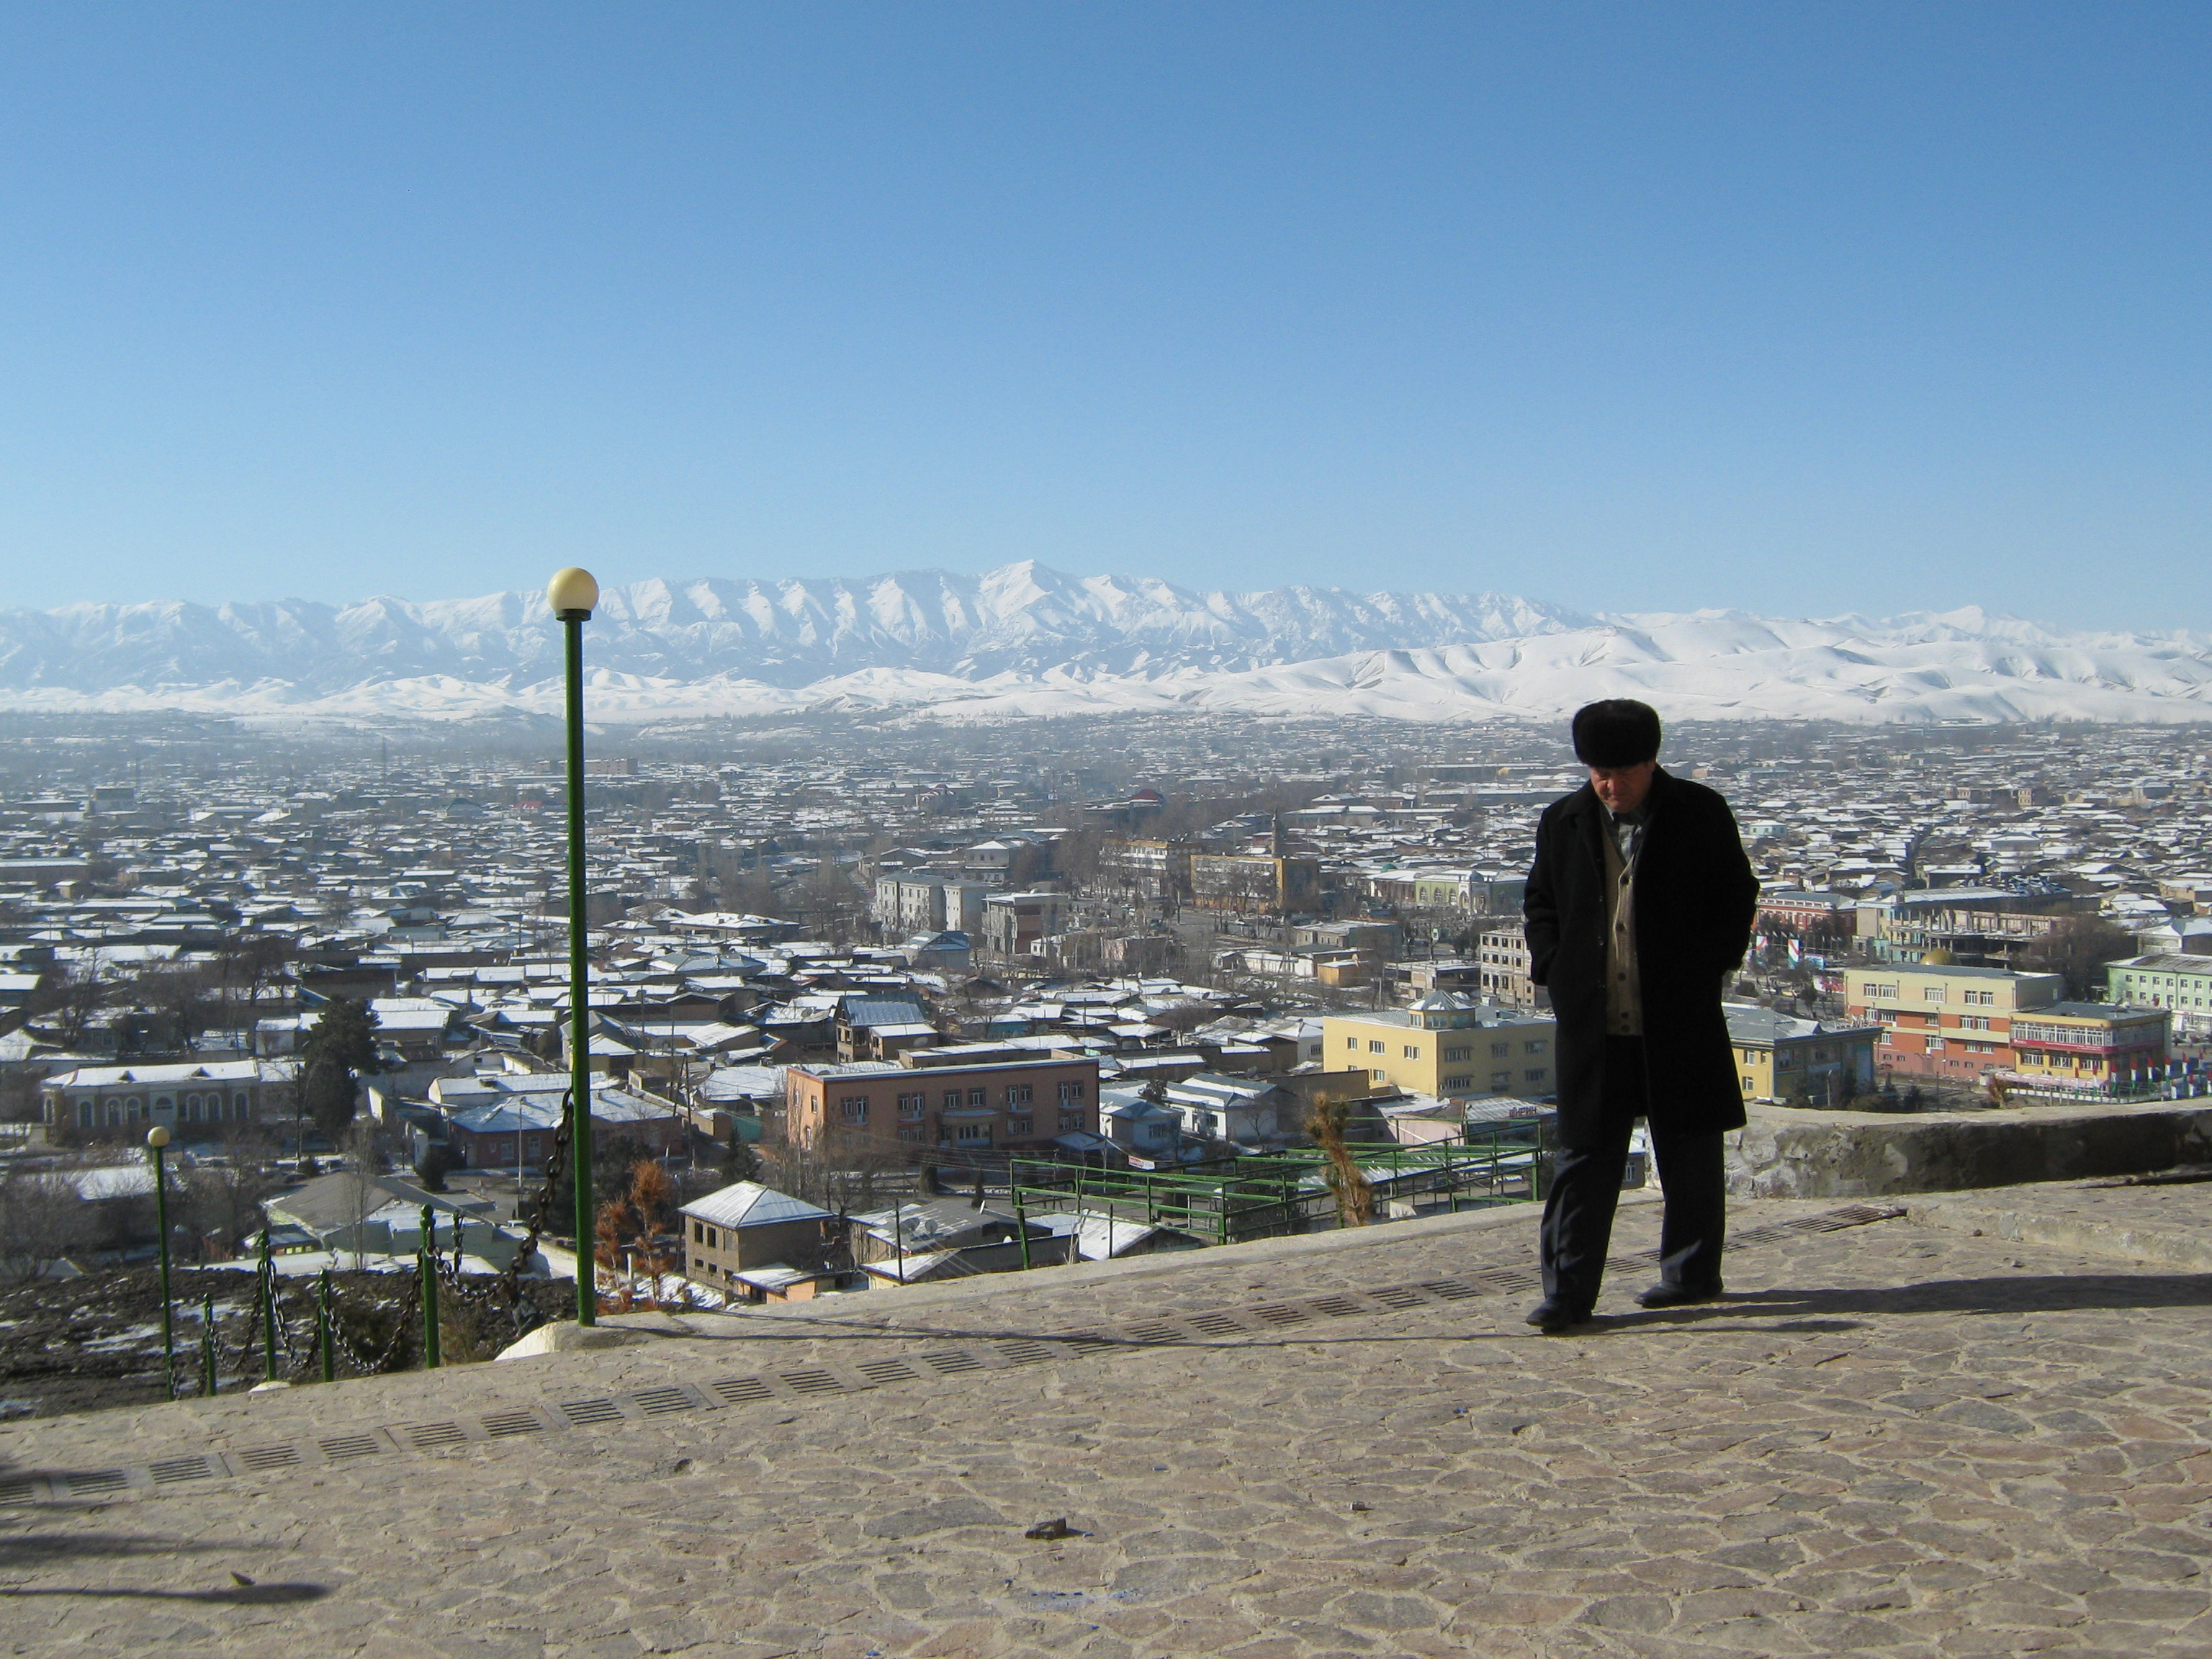 Sary Mazar Istaravshan, March Trip to Istaravshan, Part 1, Mug Teppe | nancystan